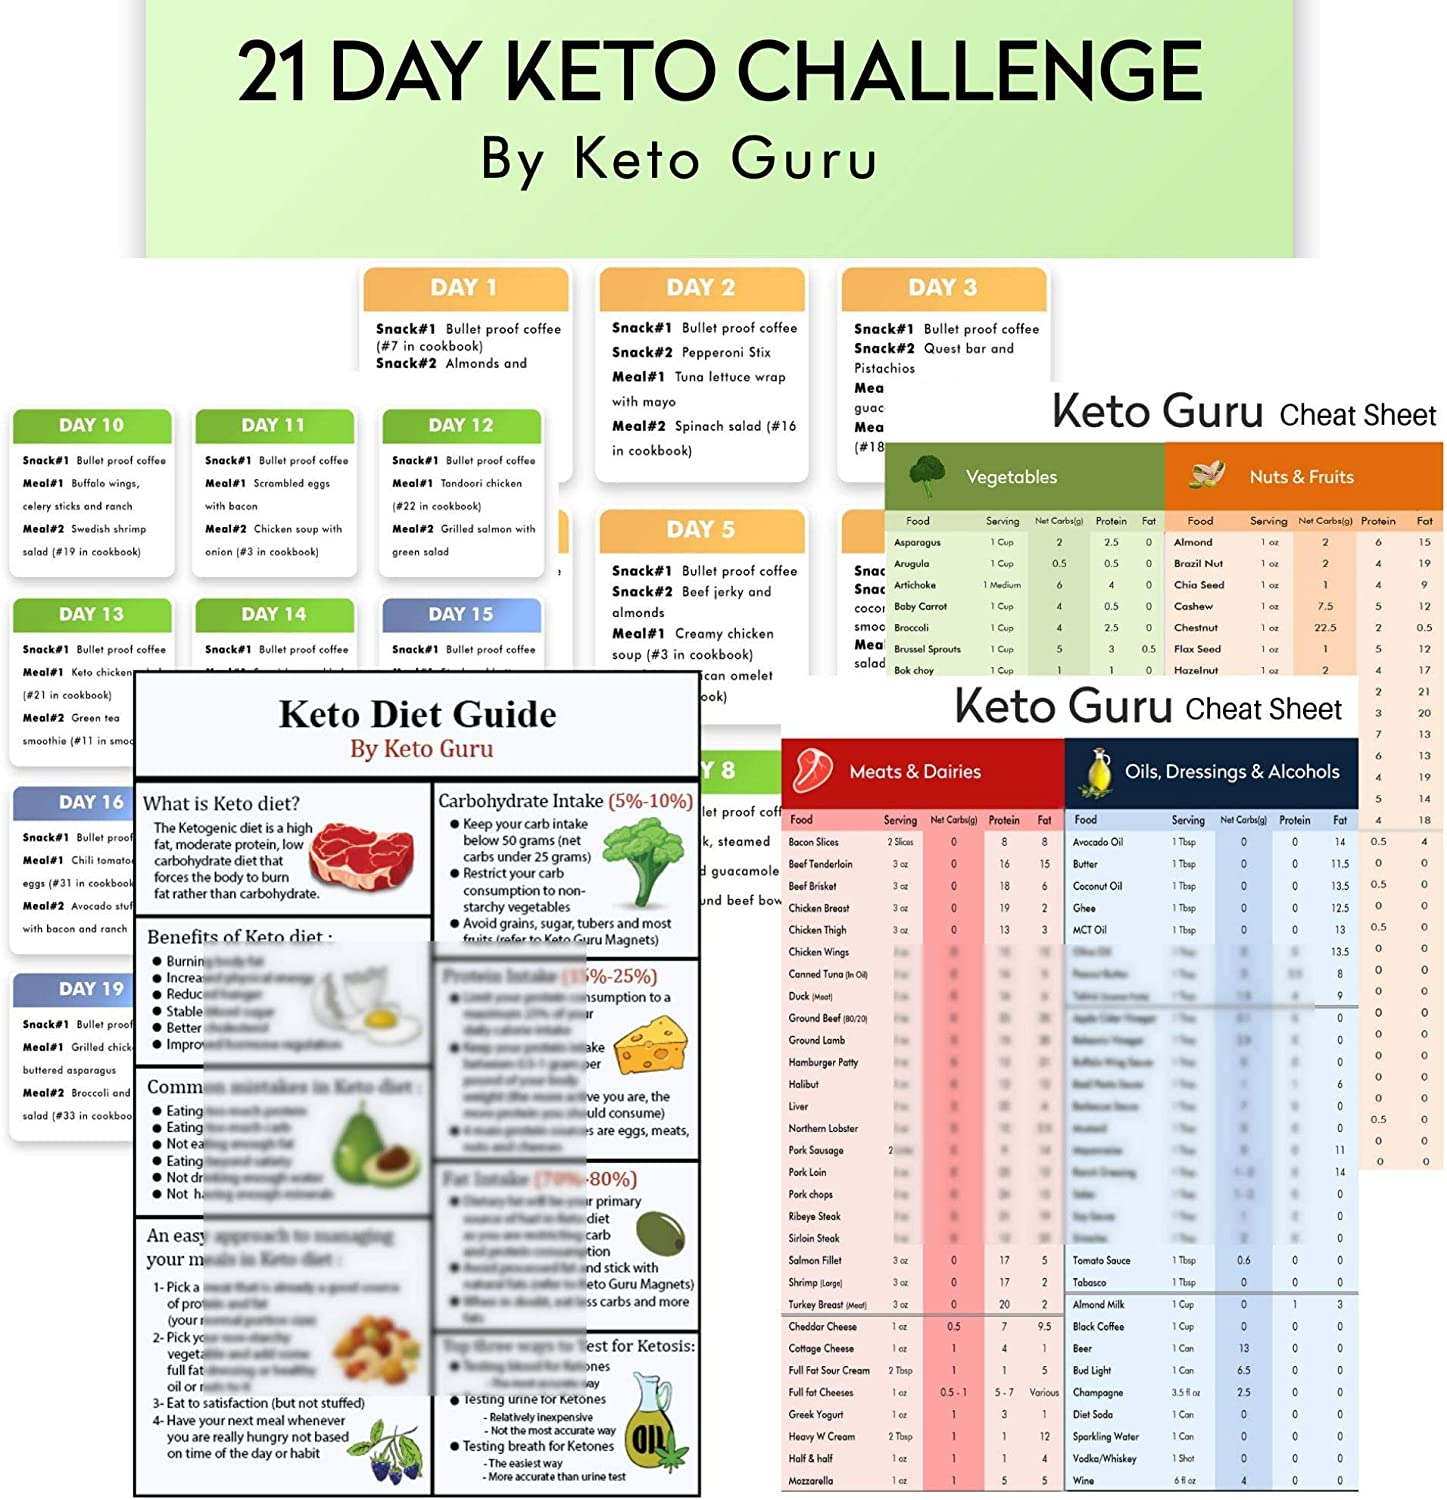 Amazon Com 21 Day Keto Challenge Pack With Meal Plan Keto Cheat Sheets For Beginners Big Size 8 X11 Laminated Ketogenic Diet 120 Food List Quick Guide Reference Charts For Weight Loss Keto Recipes